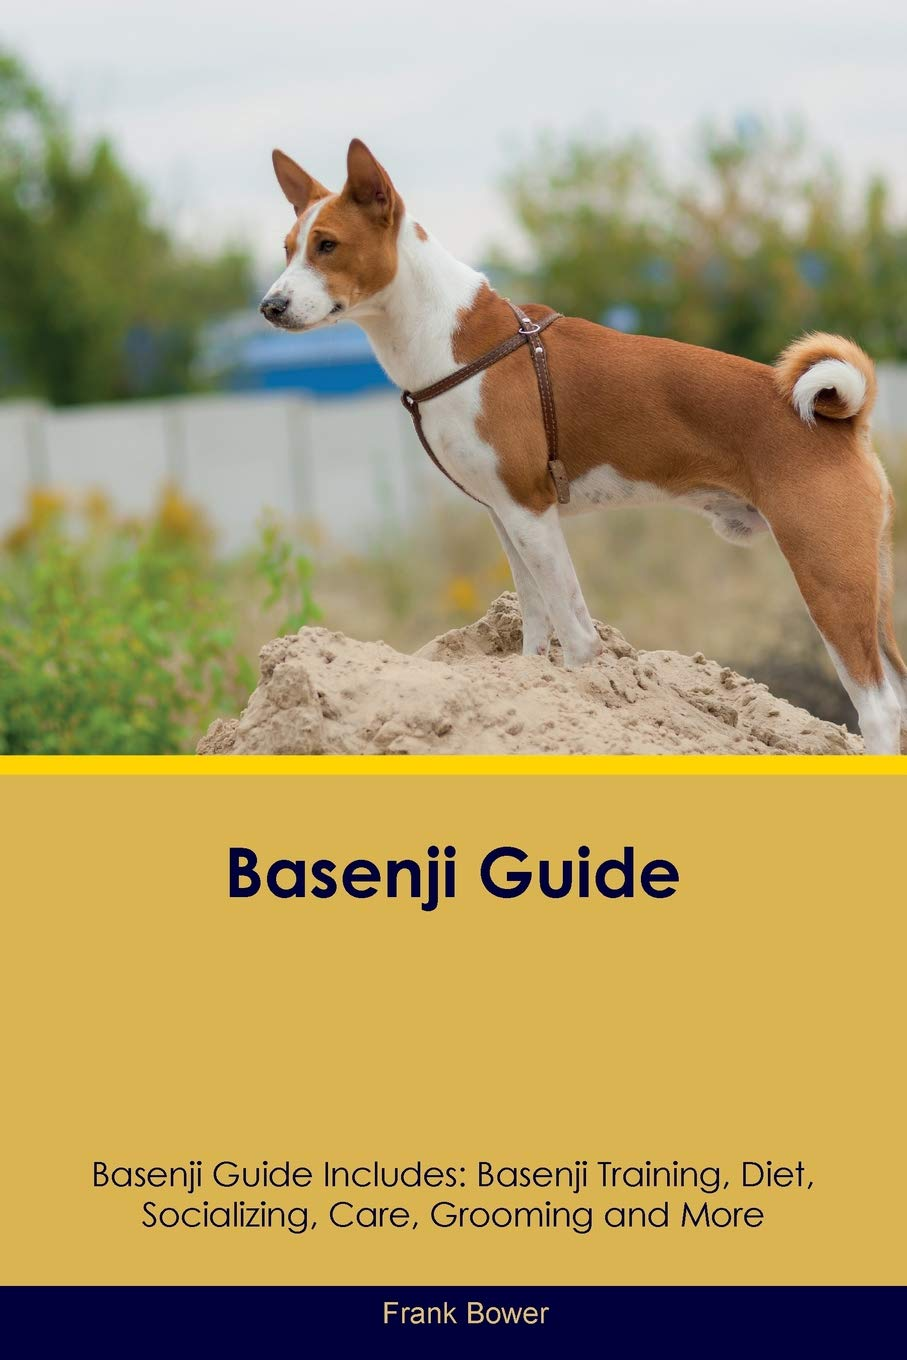 Basenji Guide Basenji Guide Includes: Basenji Training, Diet, Socializing, Care, Grooming, Breeding and More